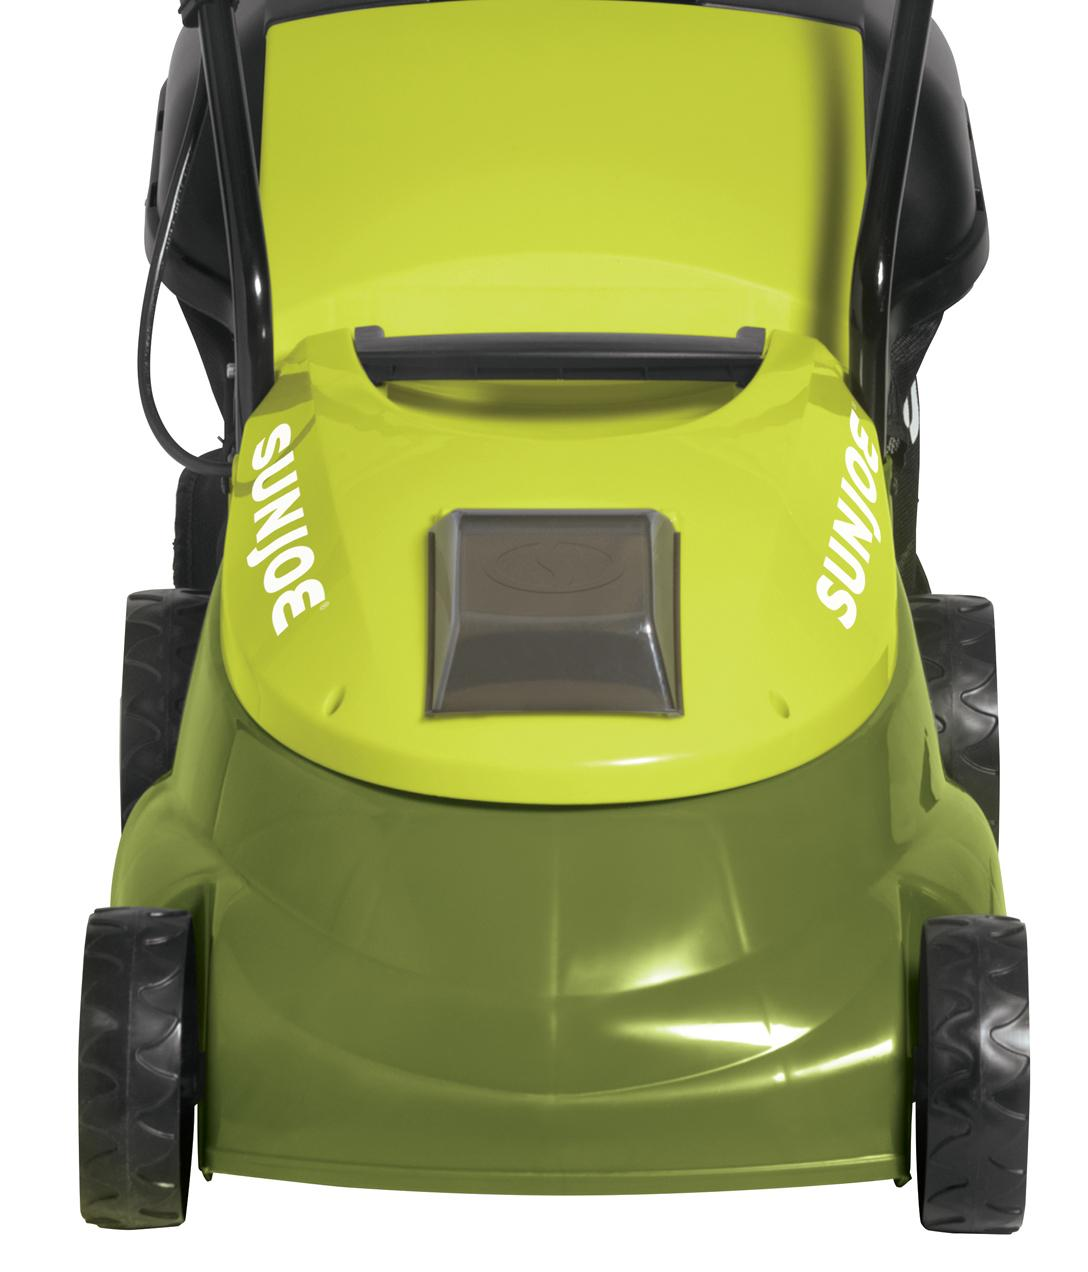 Sun Joe Mj401c 14 Inch 28 Volt Cordless Lawn Mower Amazon